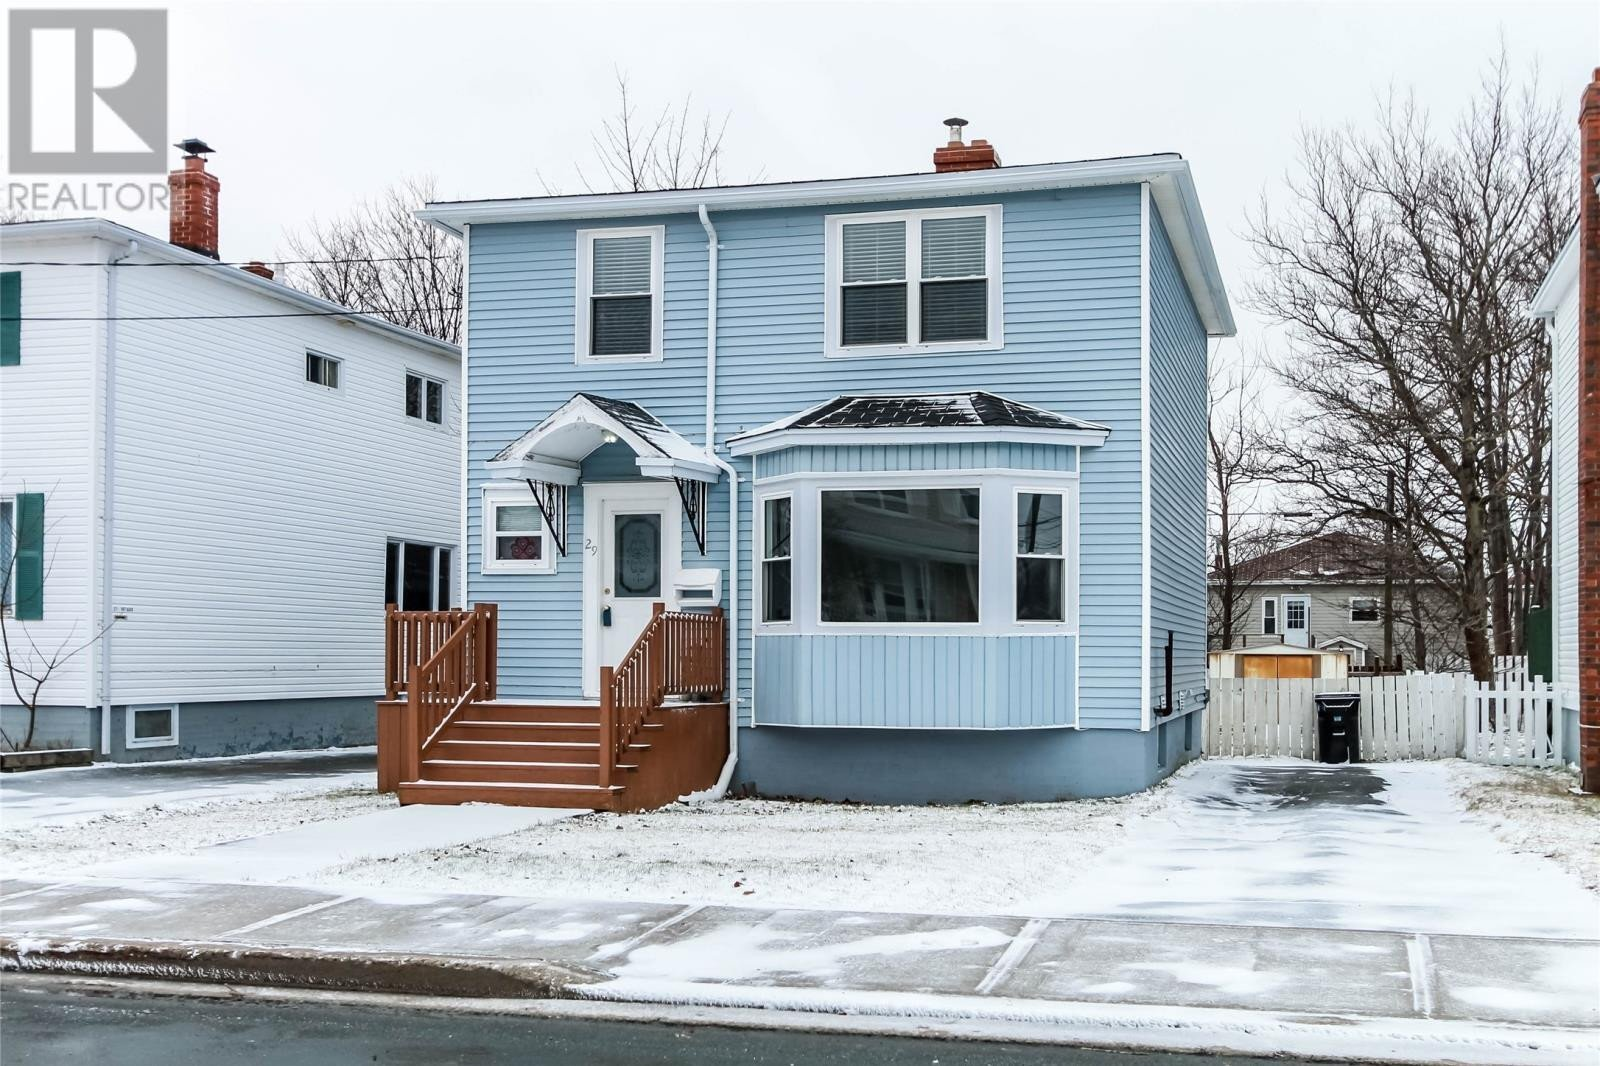 House for sale at 29 Oneil Ave St John's Newfoundland - MLS: 1224383